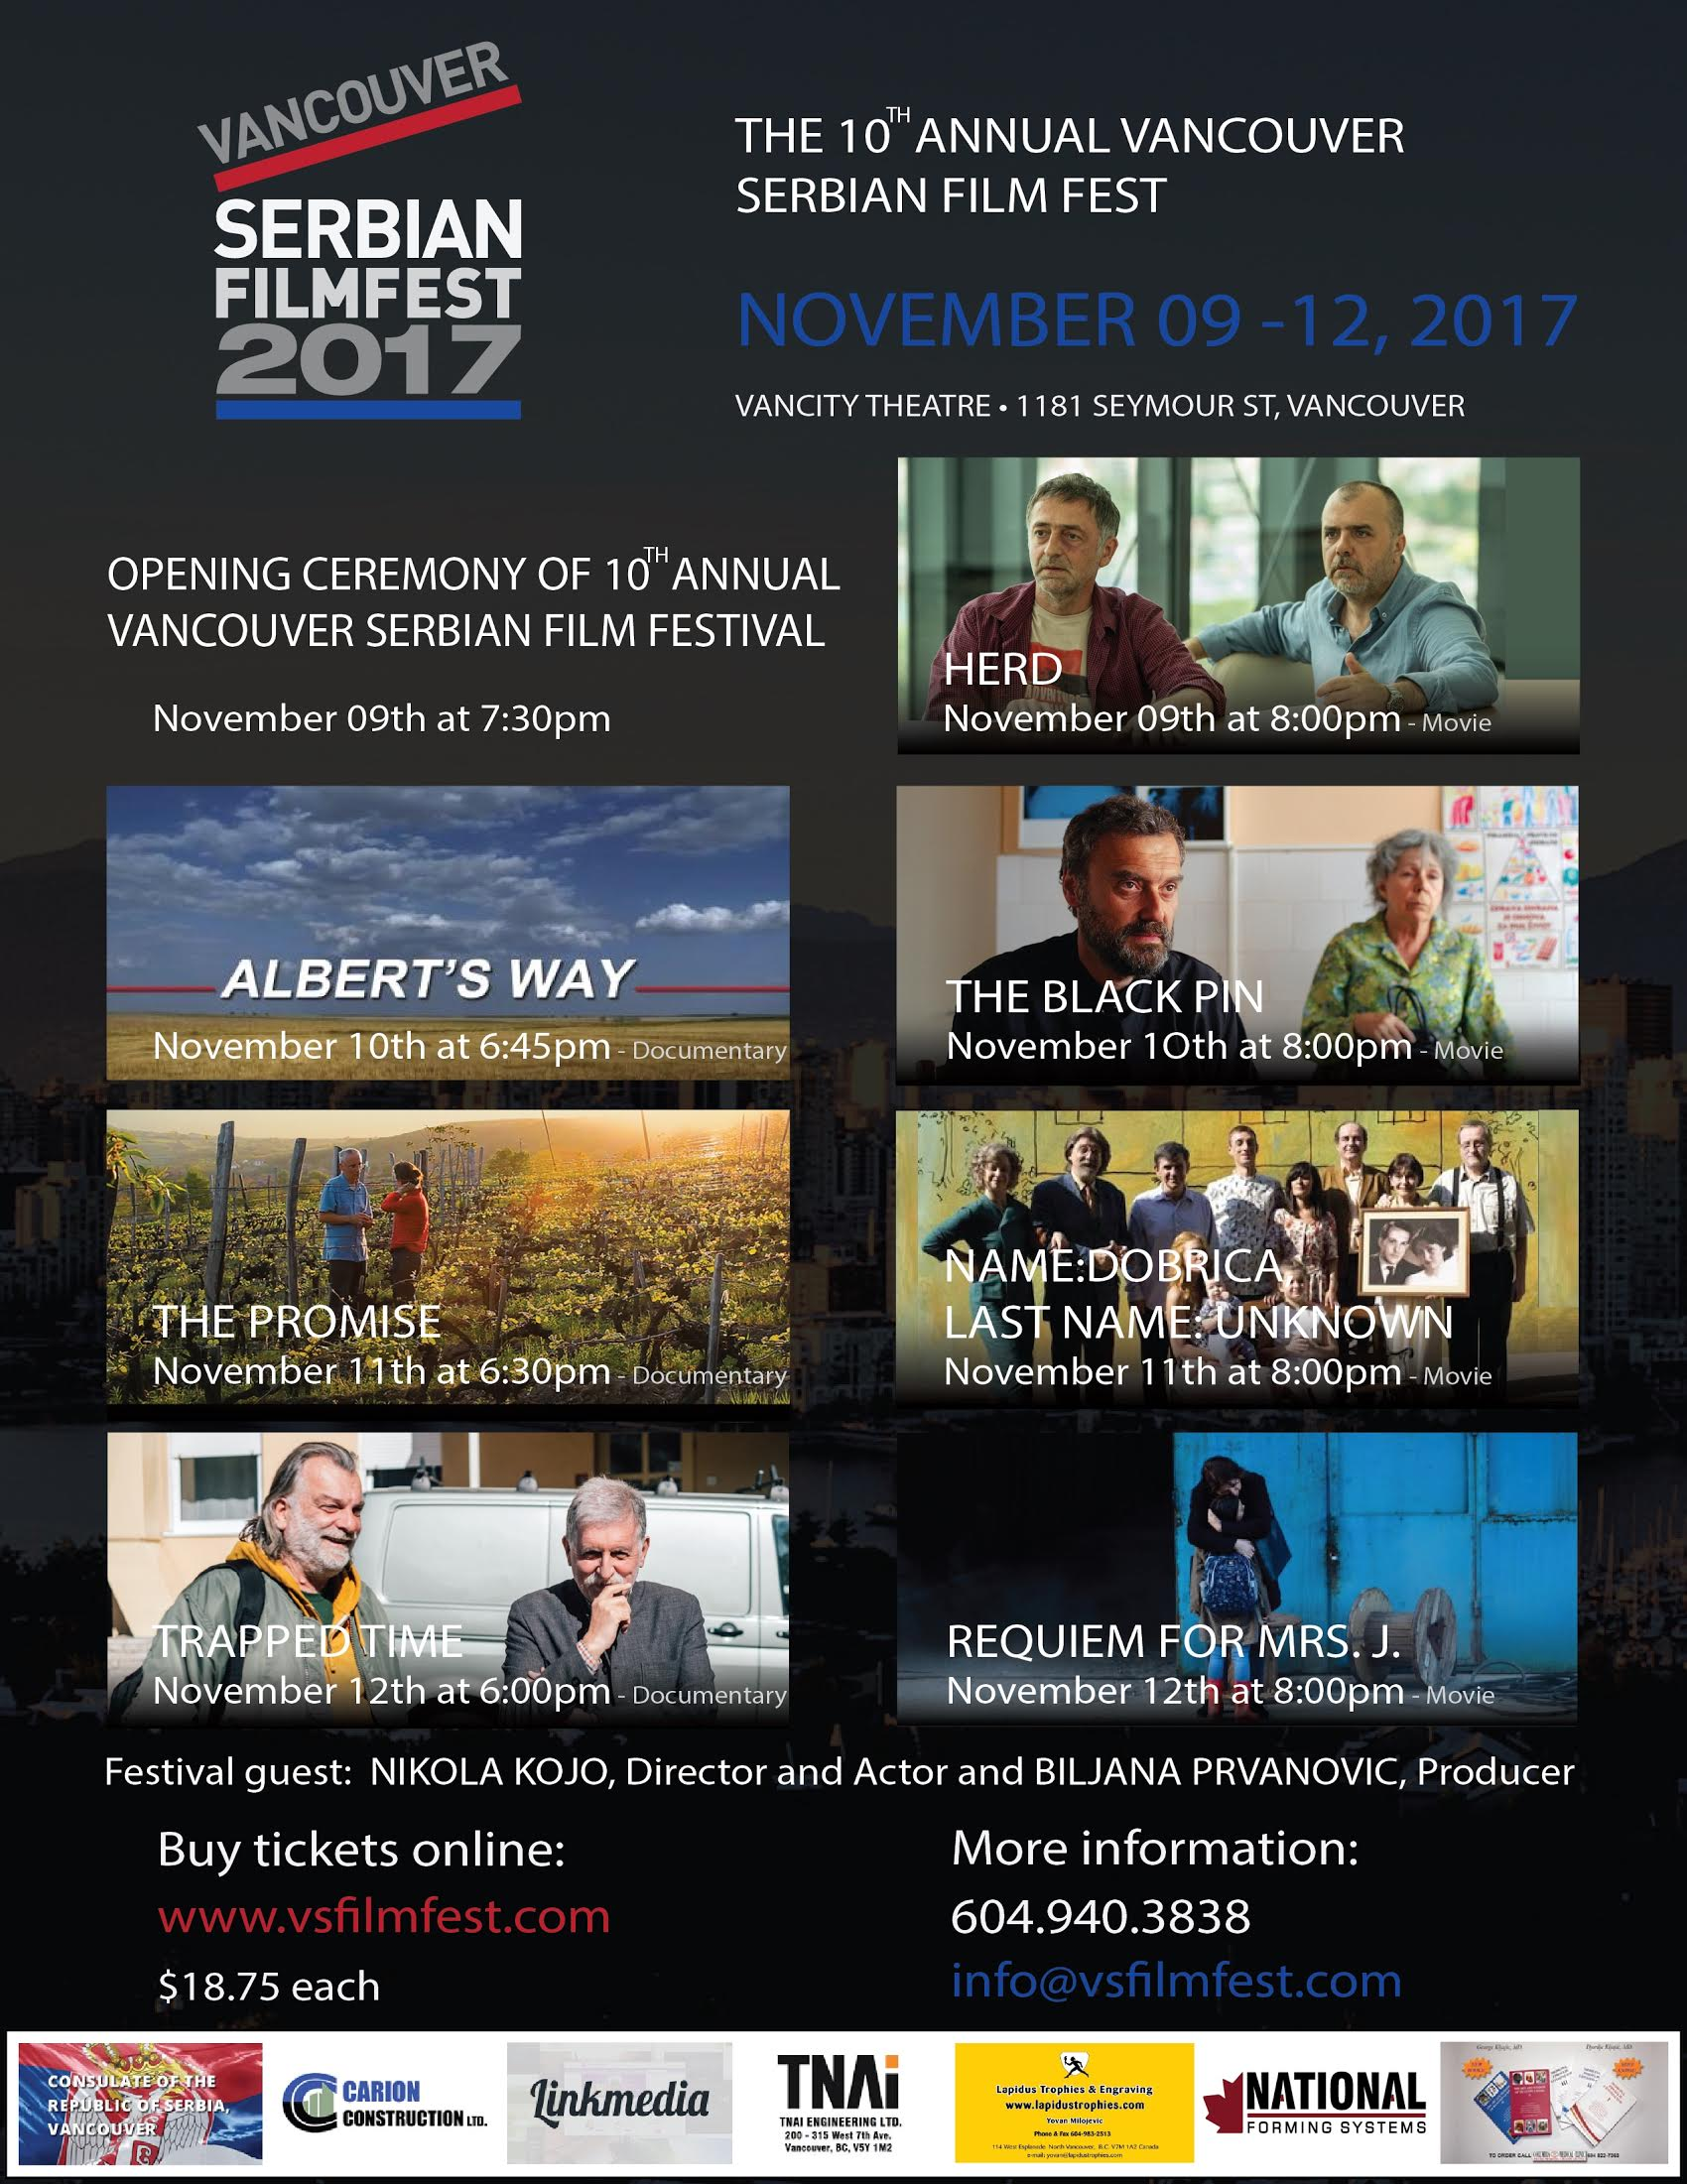 The 10th Annual Vancouver Serbian FilmFest